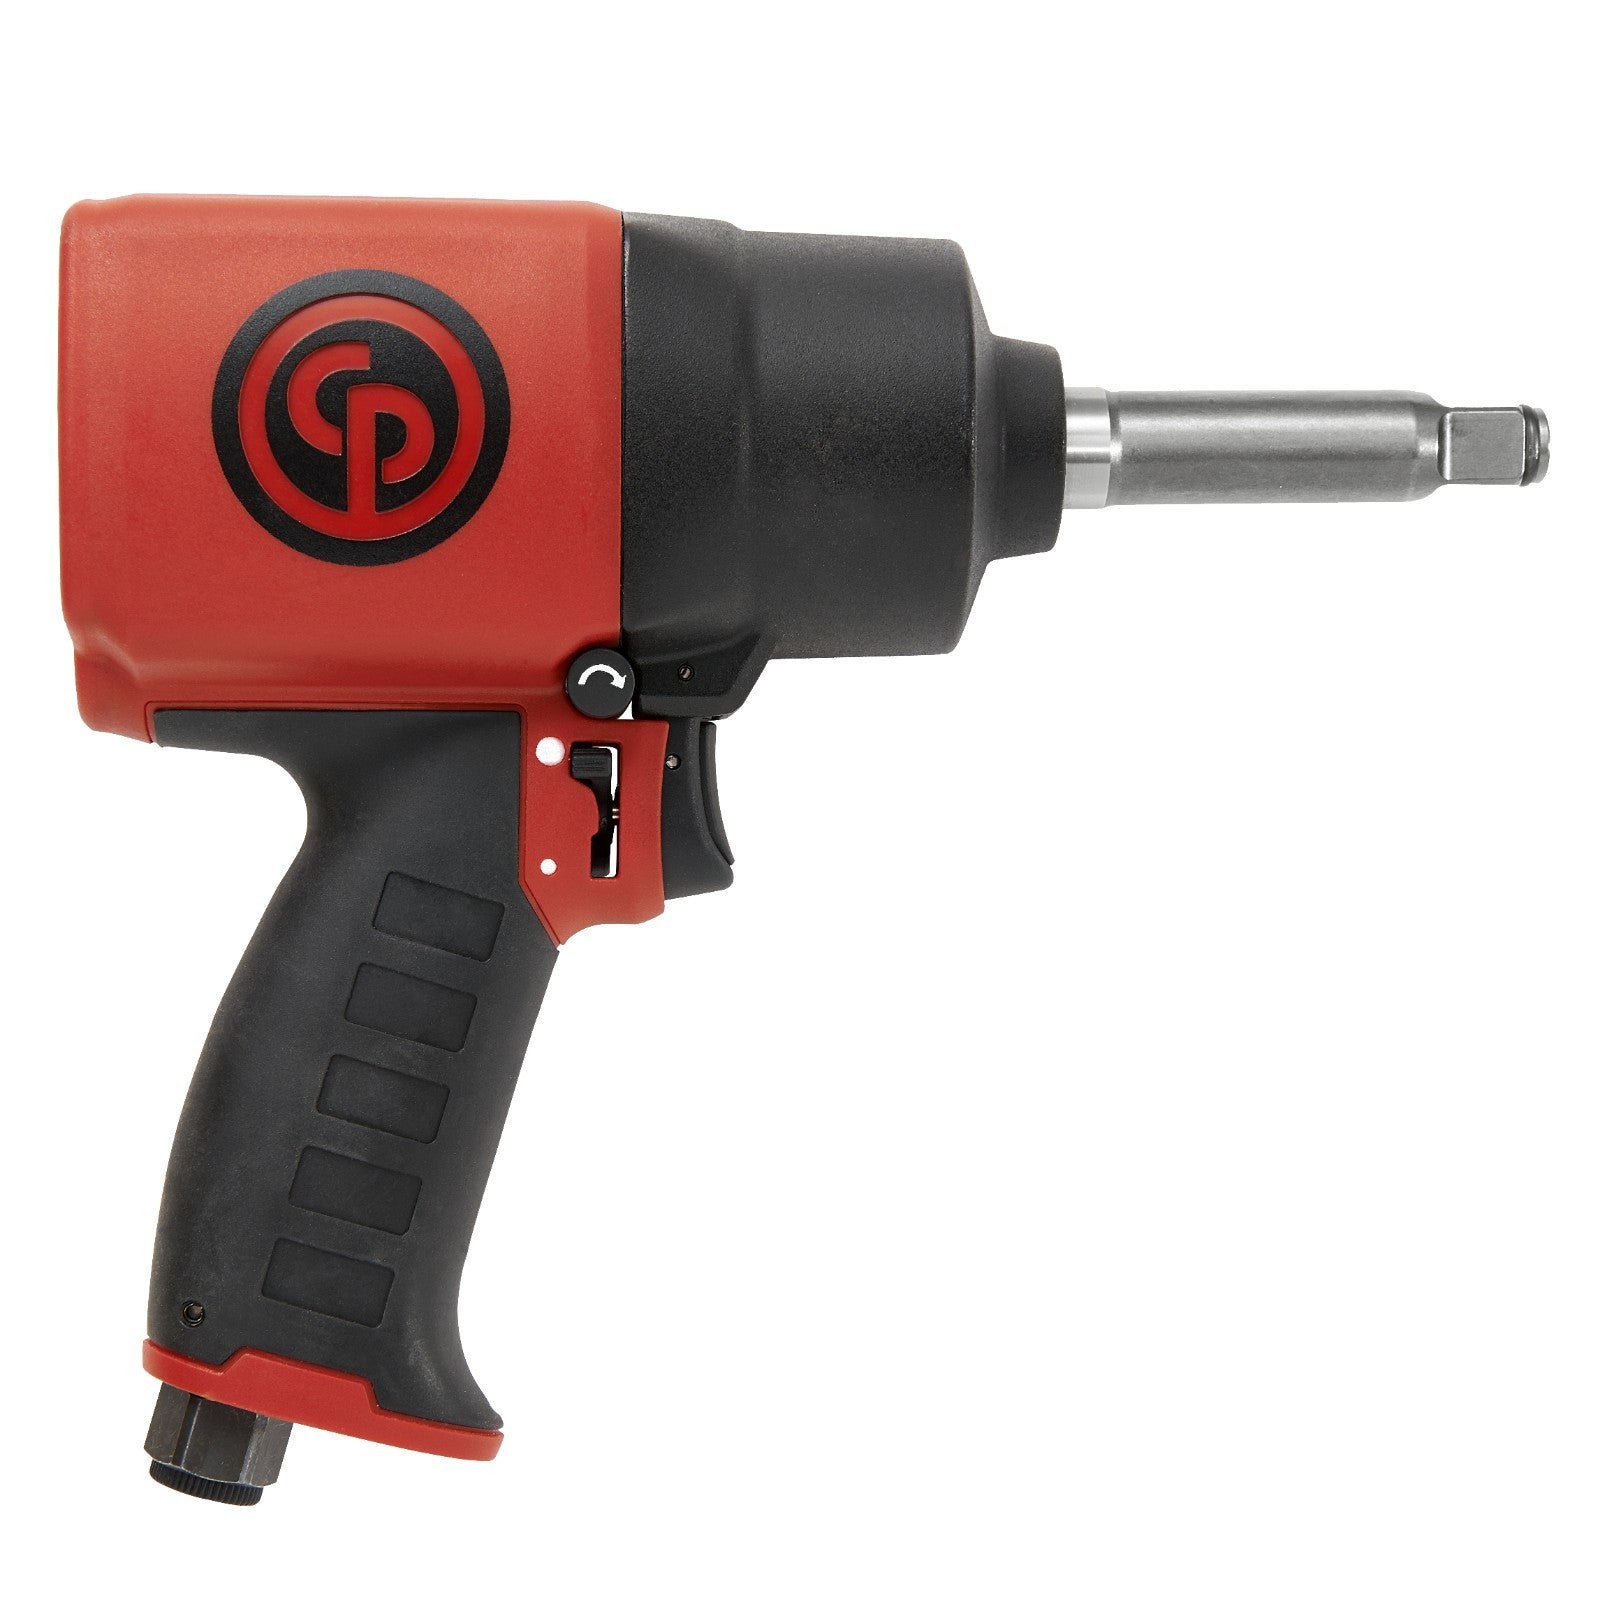 Chicago Pneumatic Impact Wrench (1/2″ Drive) (CP7749-2)